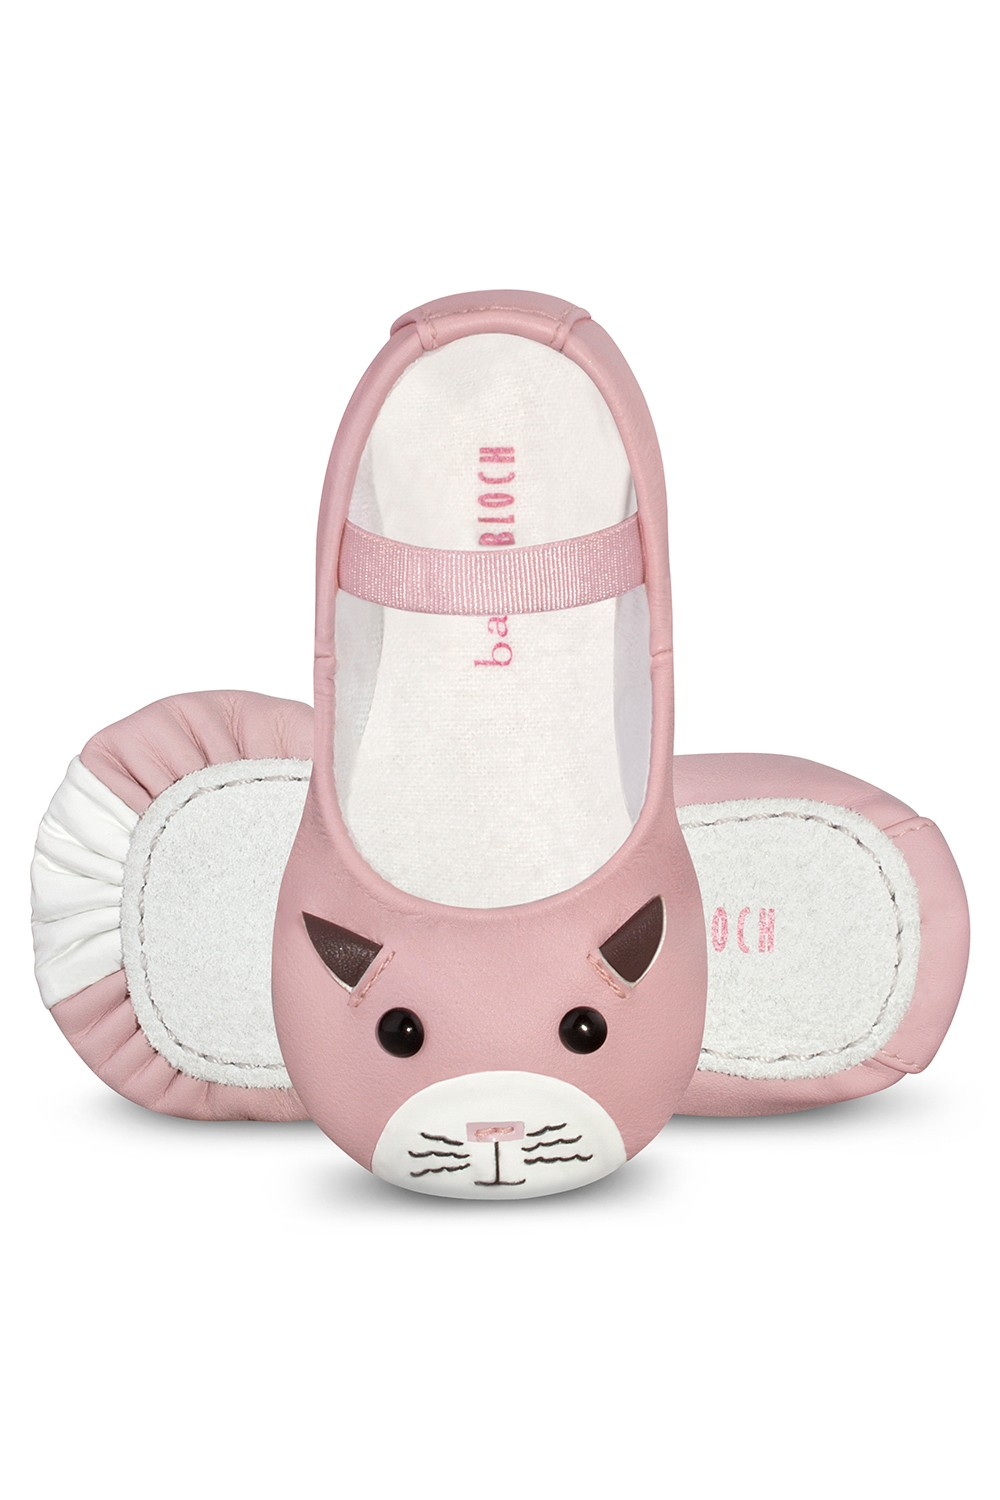 Hamster Babies Fashion Shoes